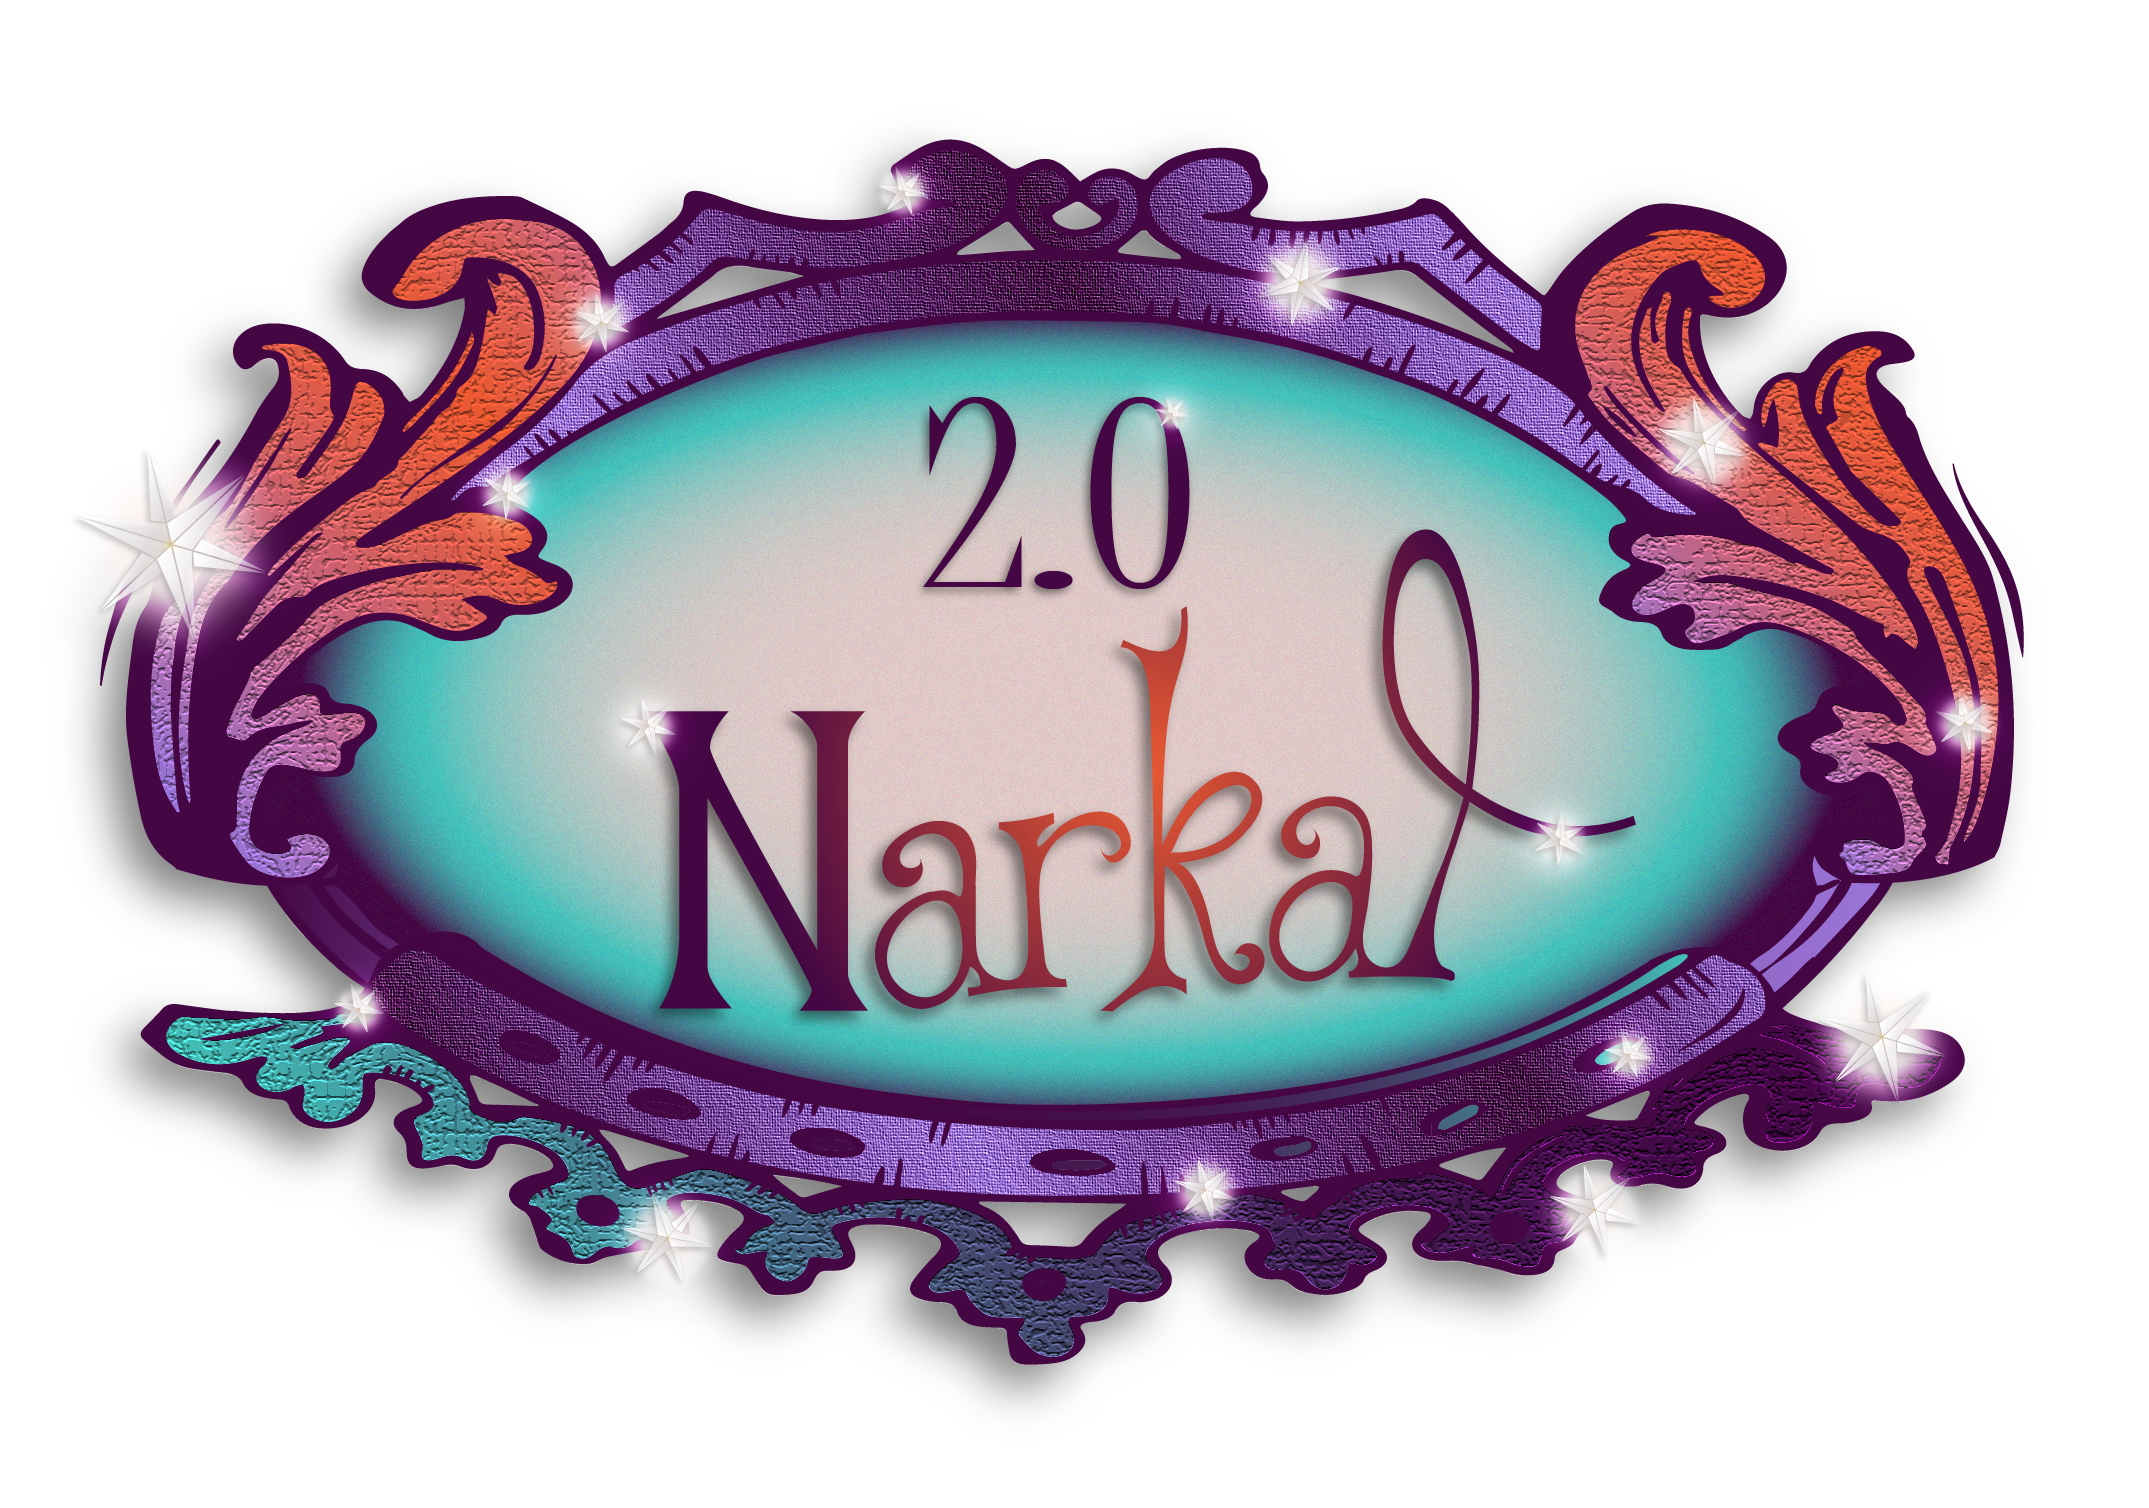 Narkal 2.0 button